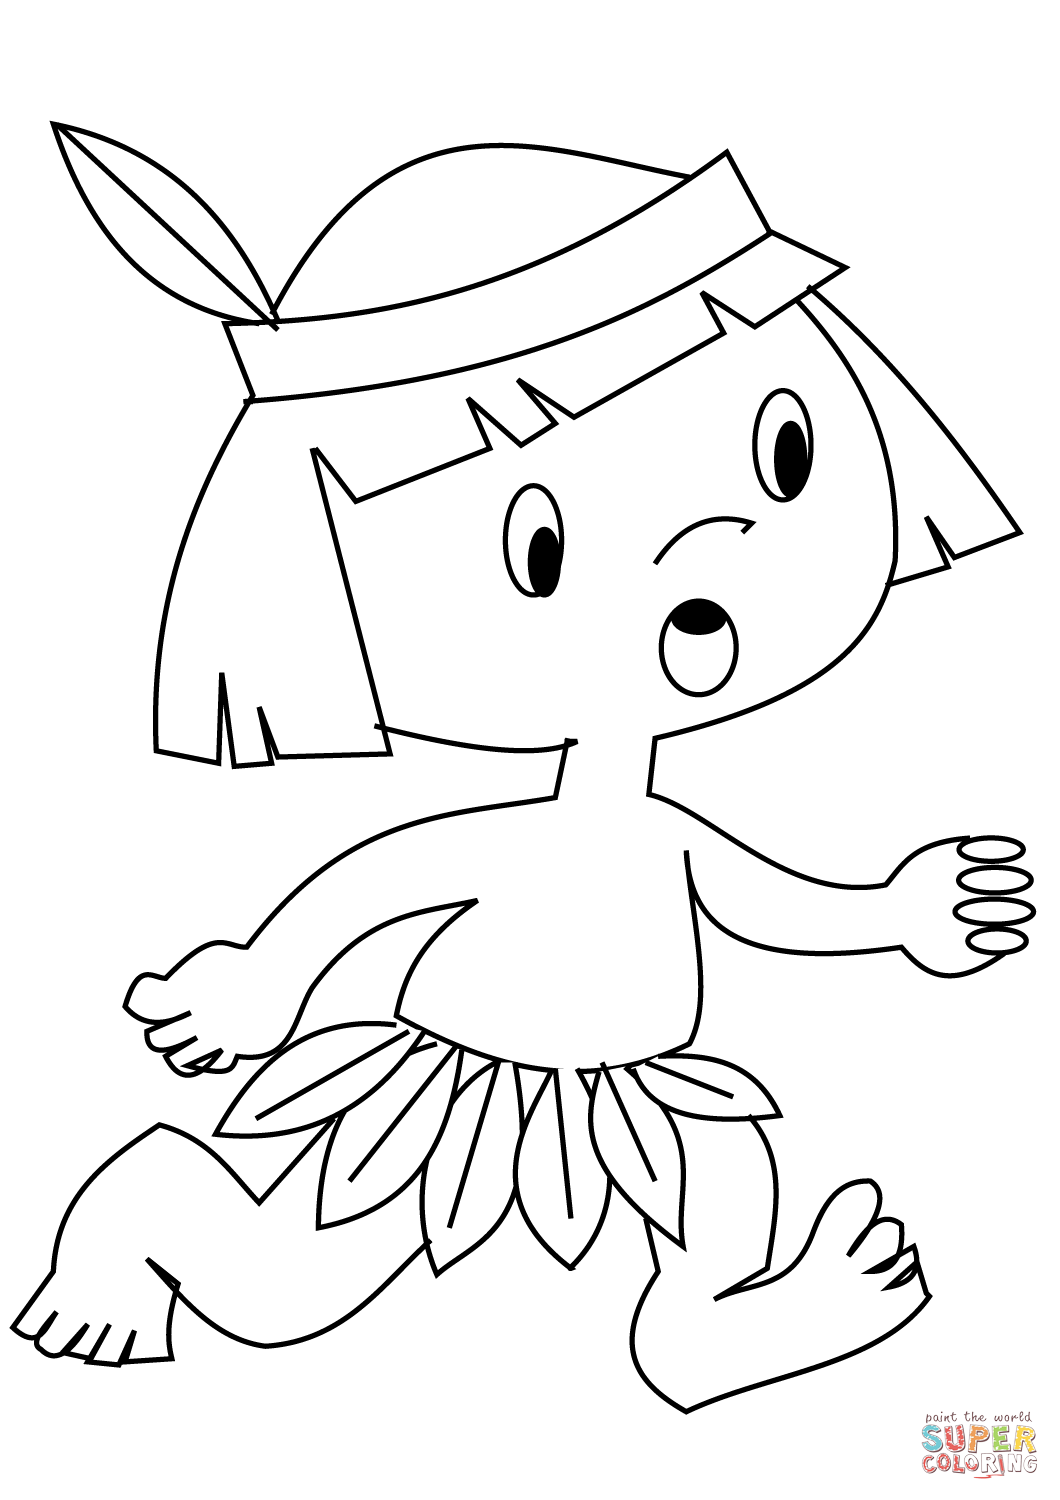 india coloring page - indian headdress coloring page coloring home